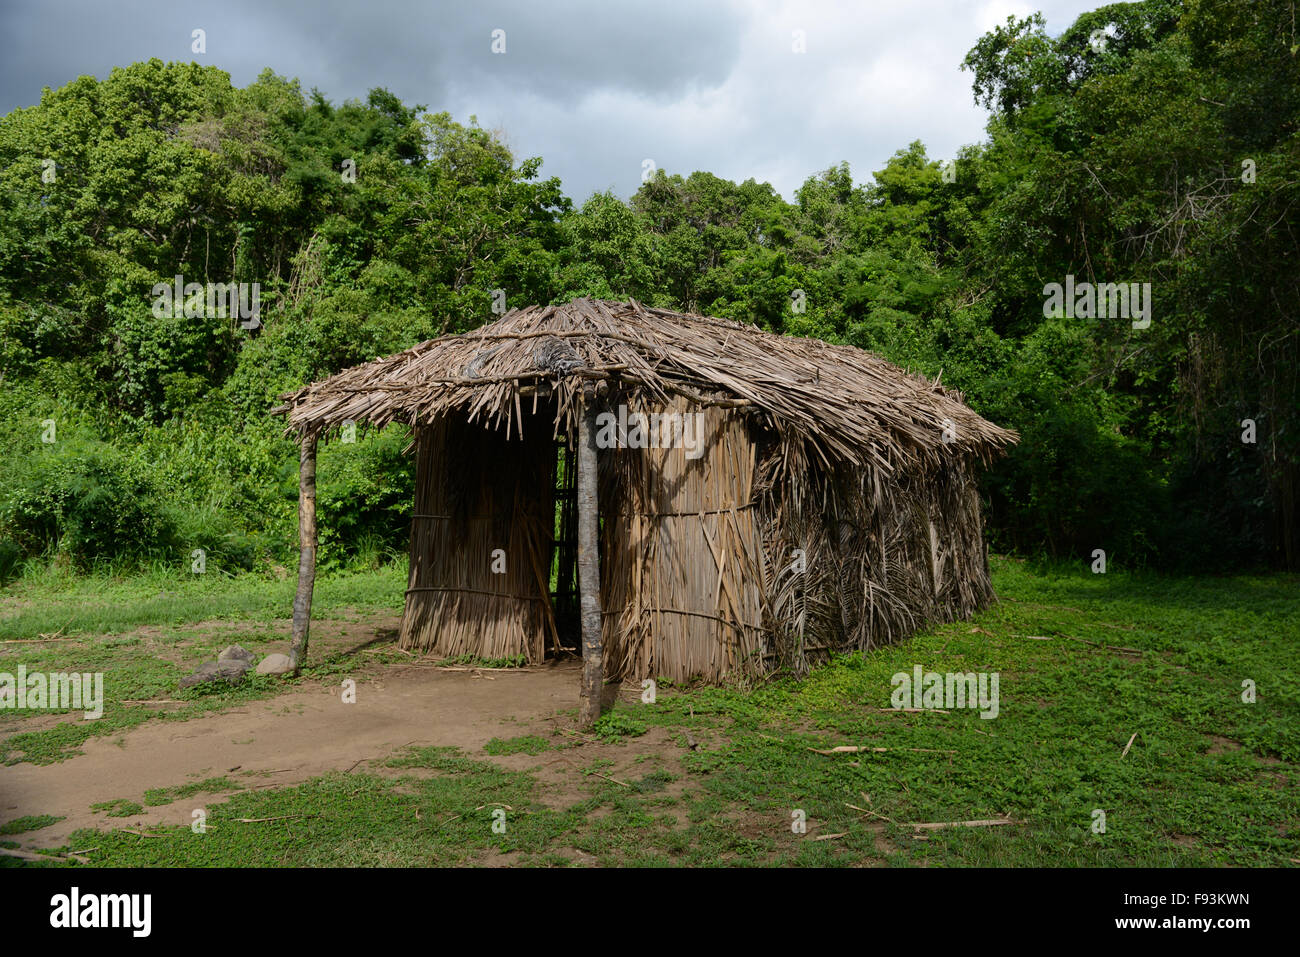 Replica of a Indigenous hut at the Tibes Indigenous Ceremonial Center. Ponce, Puerto Rico. Caribbean Island. USA - Stock Image